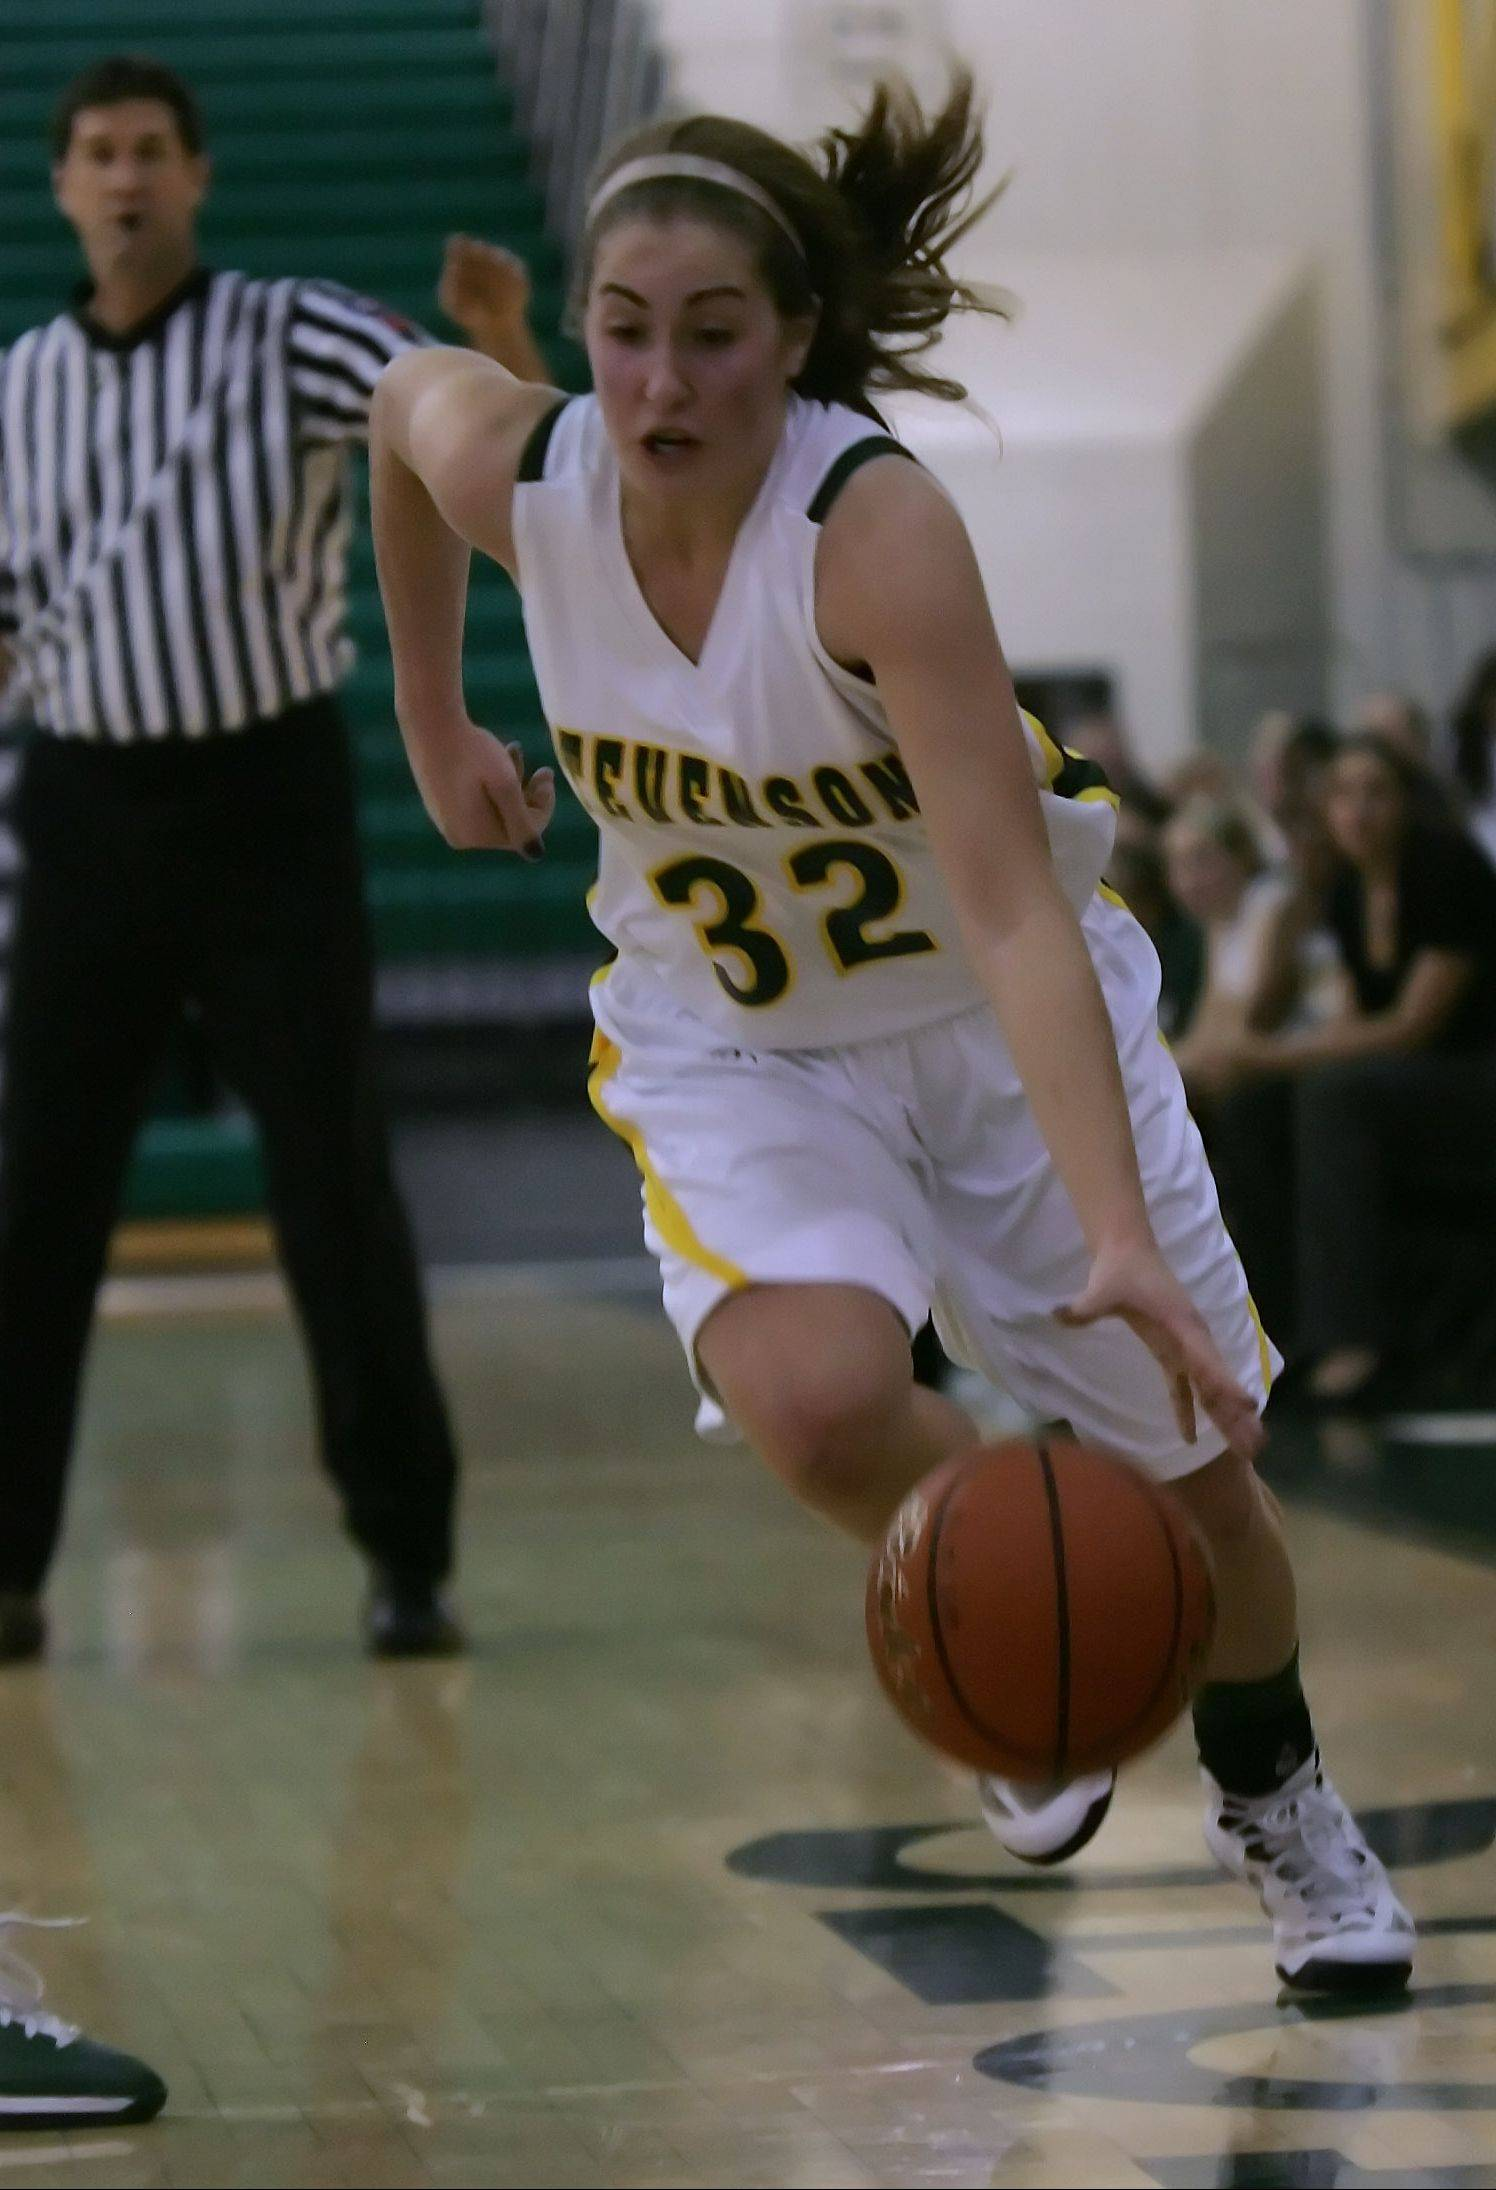 Stevenson player Sophia Way drives the ball to the hoop in the second quarter at Stevenson on Thursday.